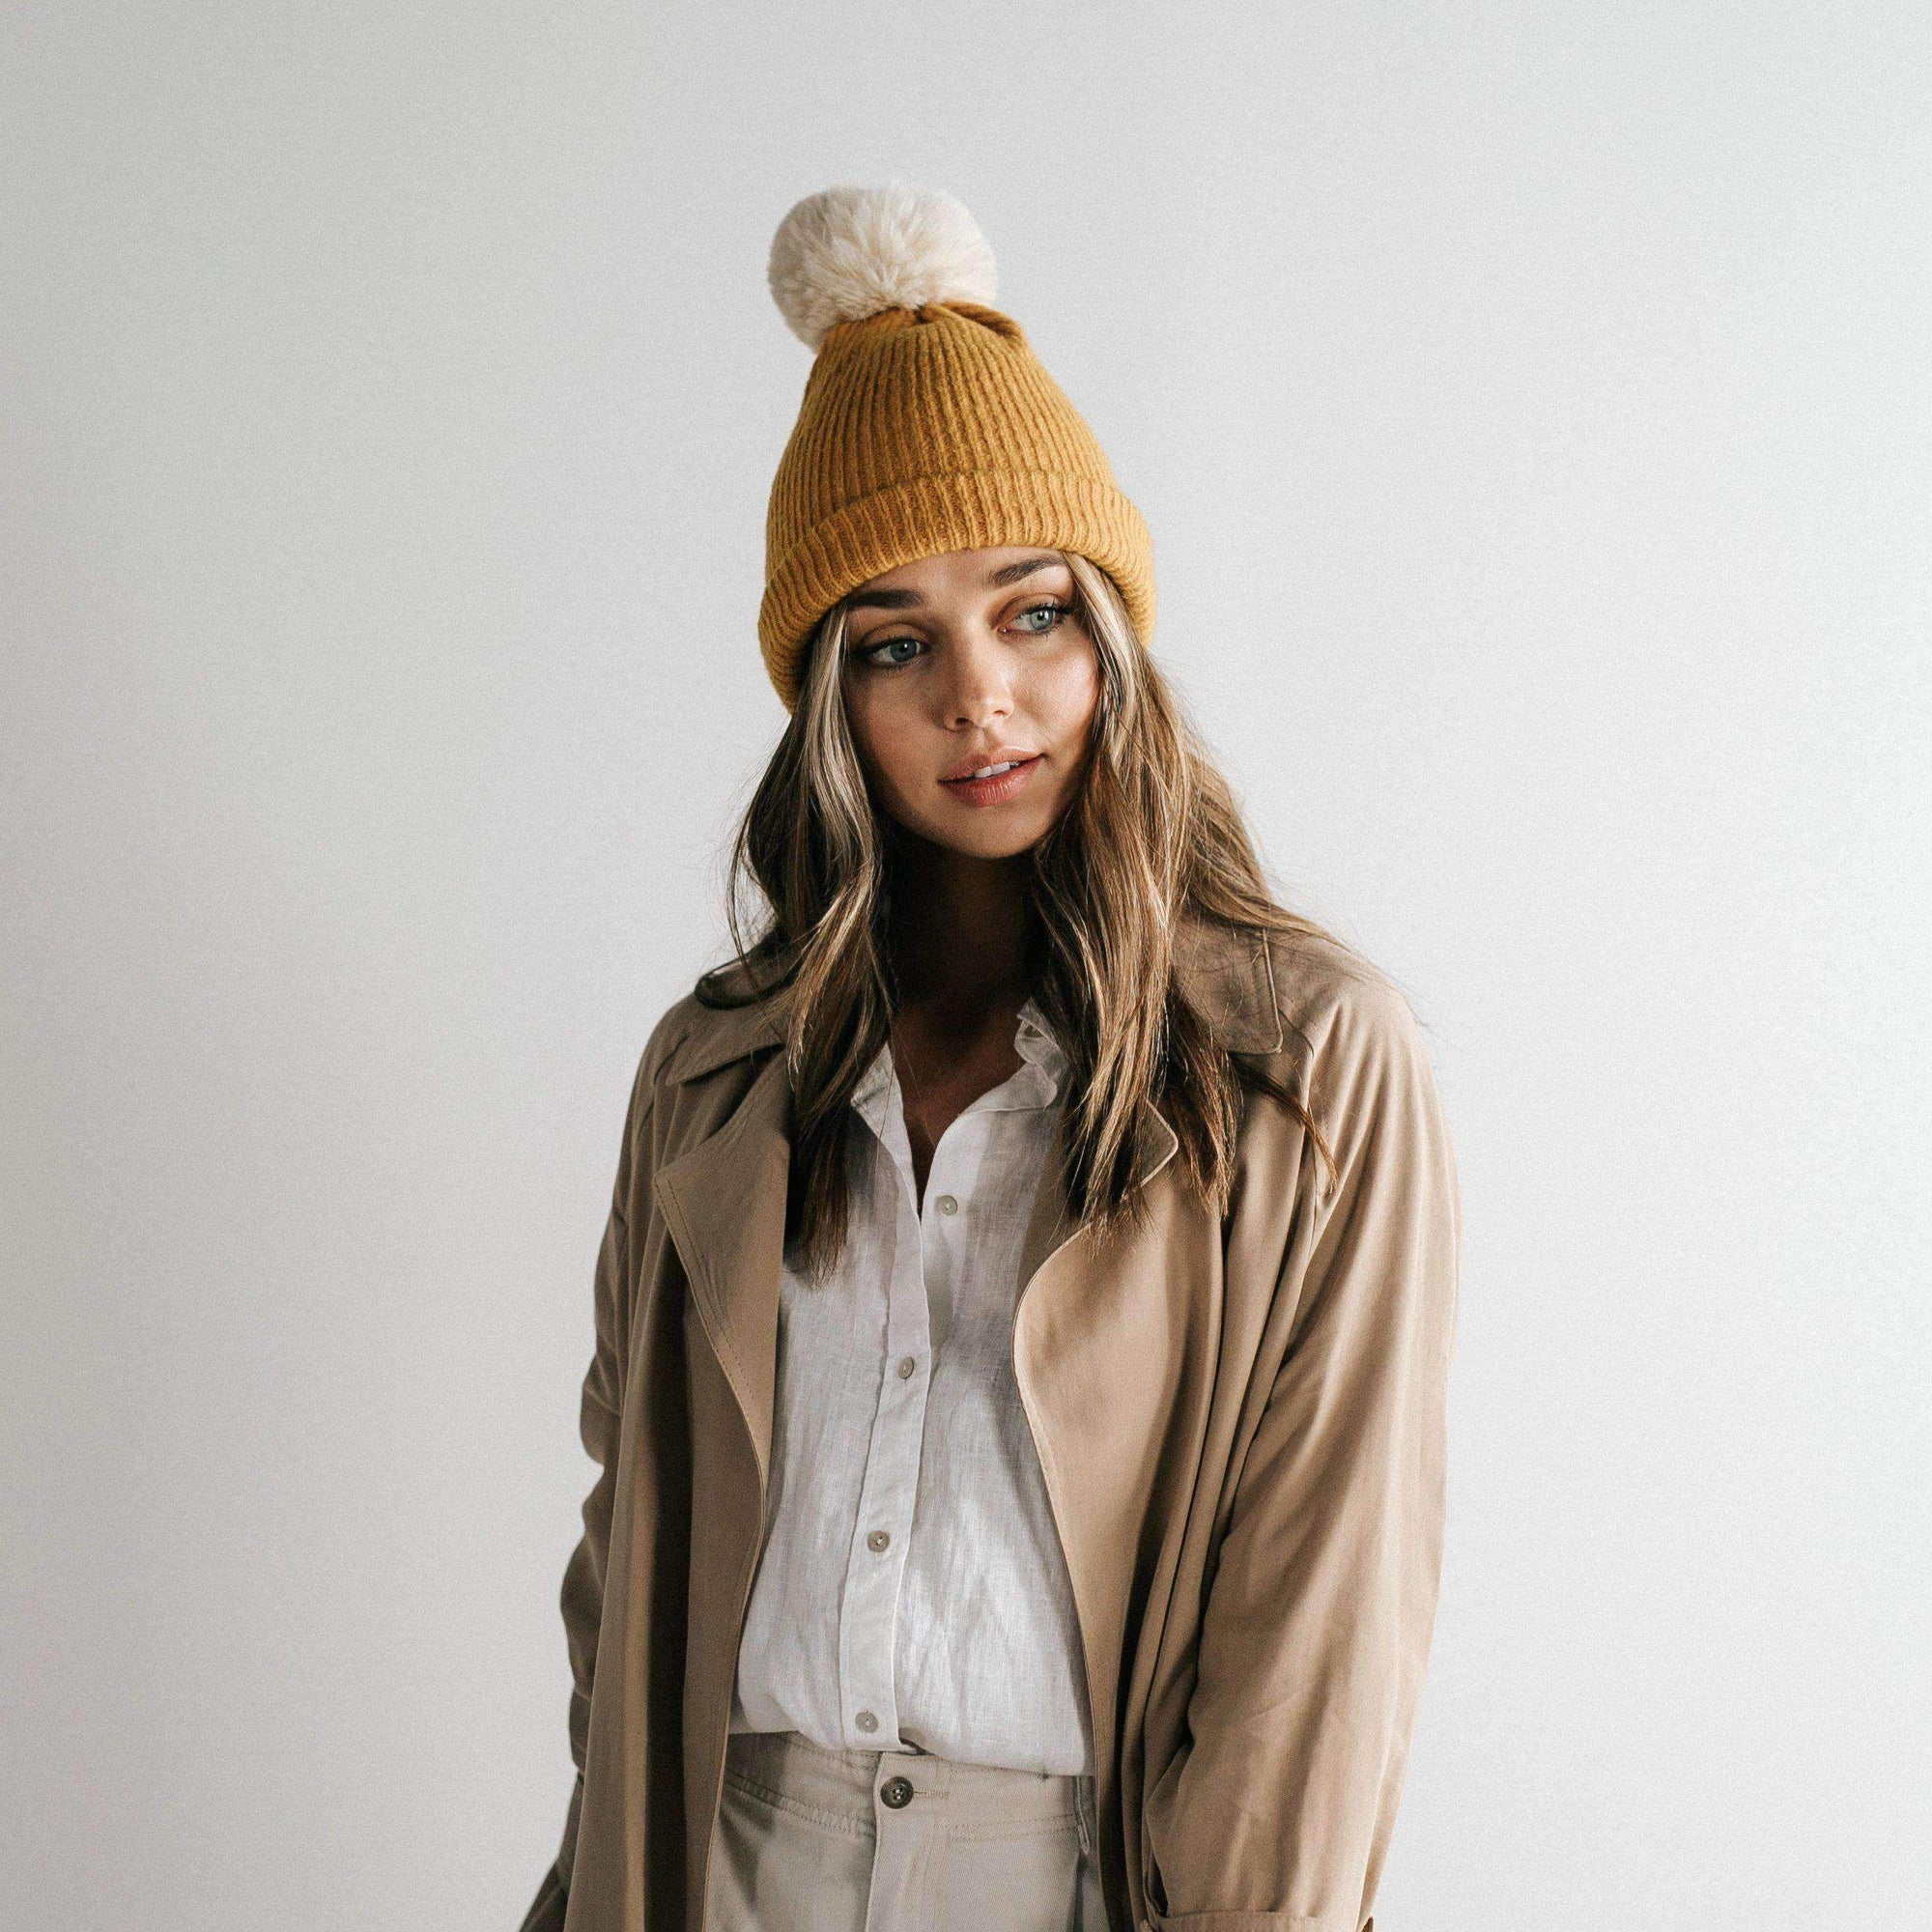 GIGI PIP Hats for Women- Dylan Beanie - Mustard with Cream Pom-Beanie